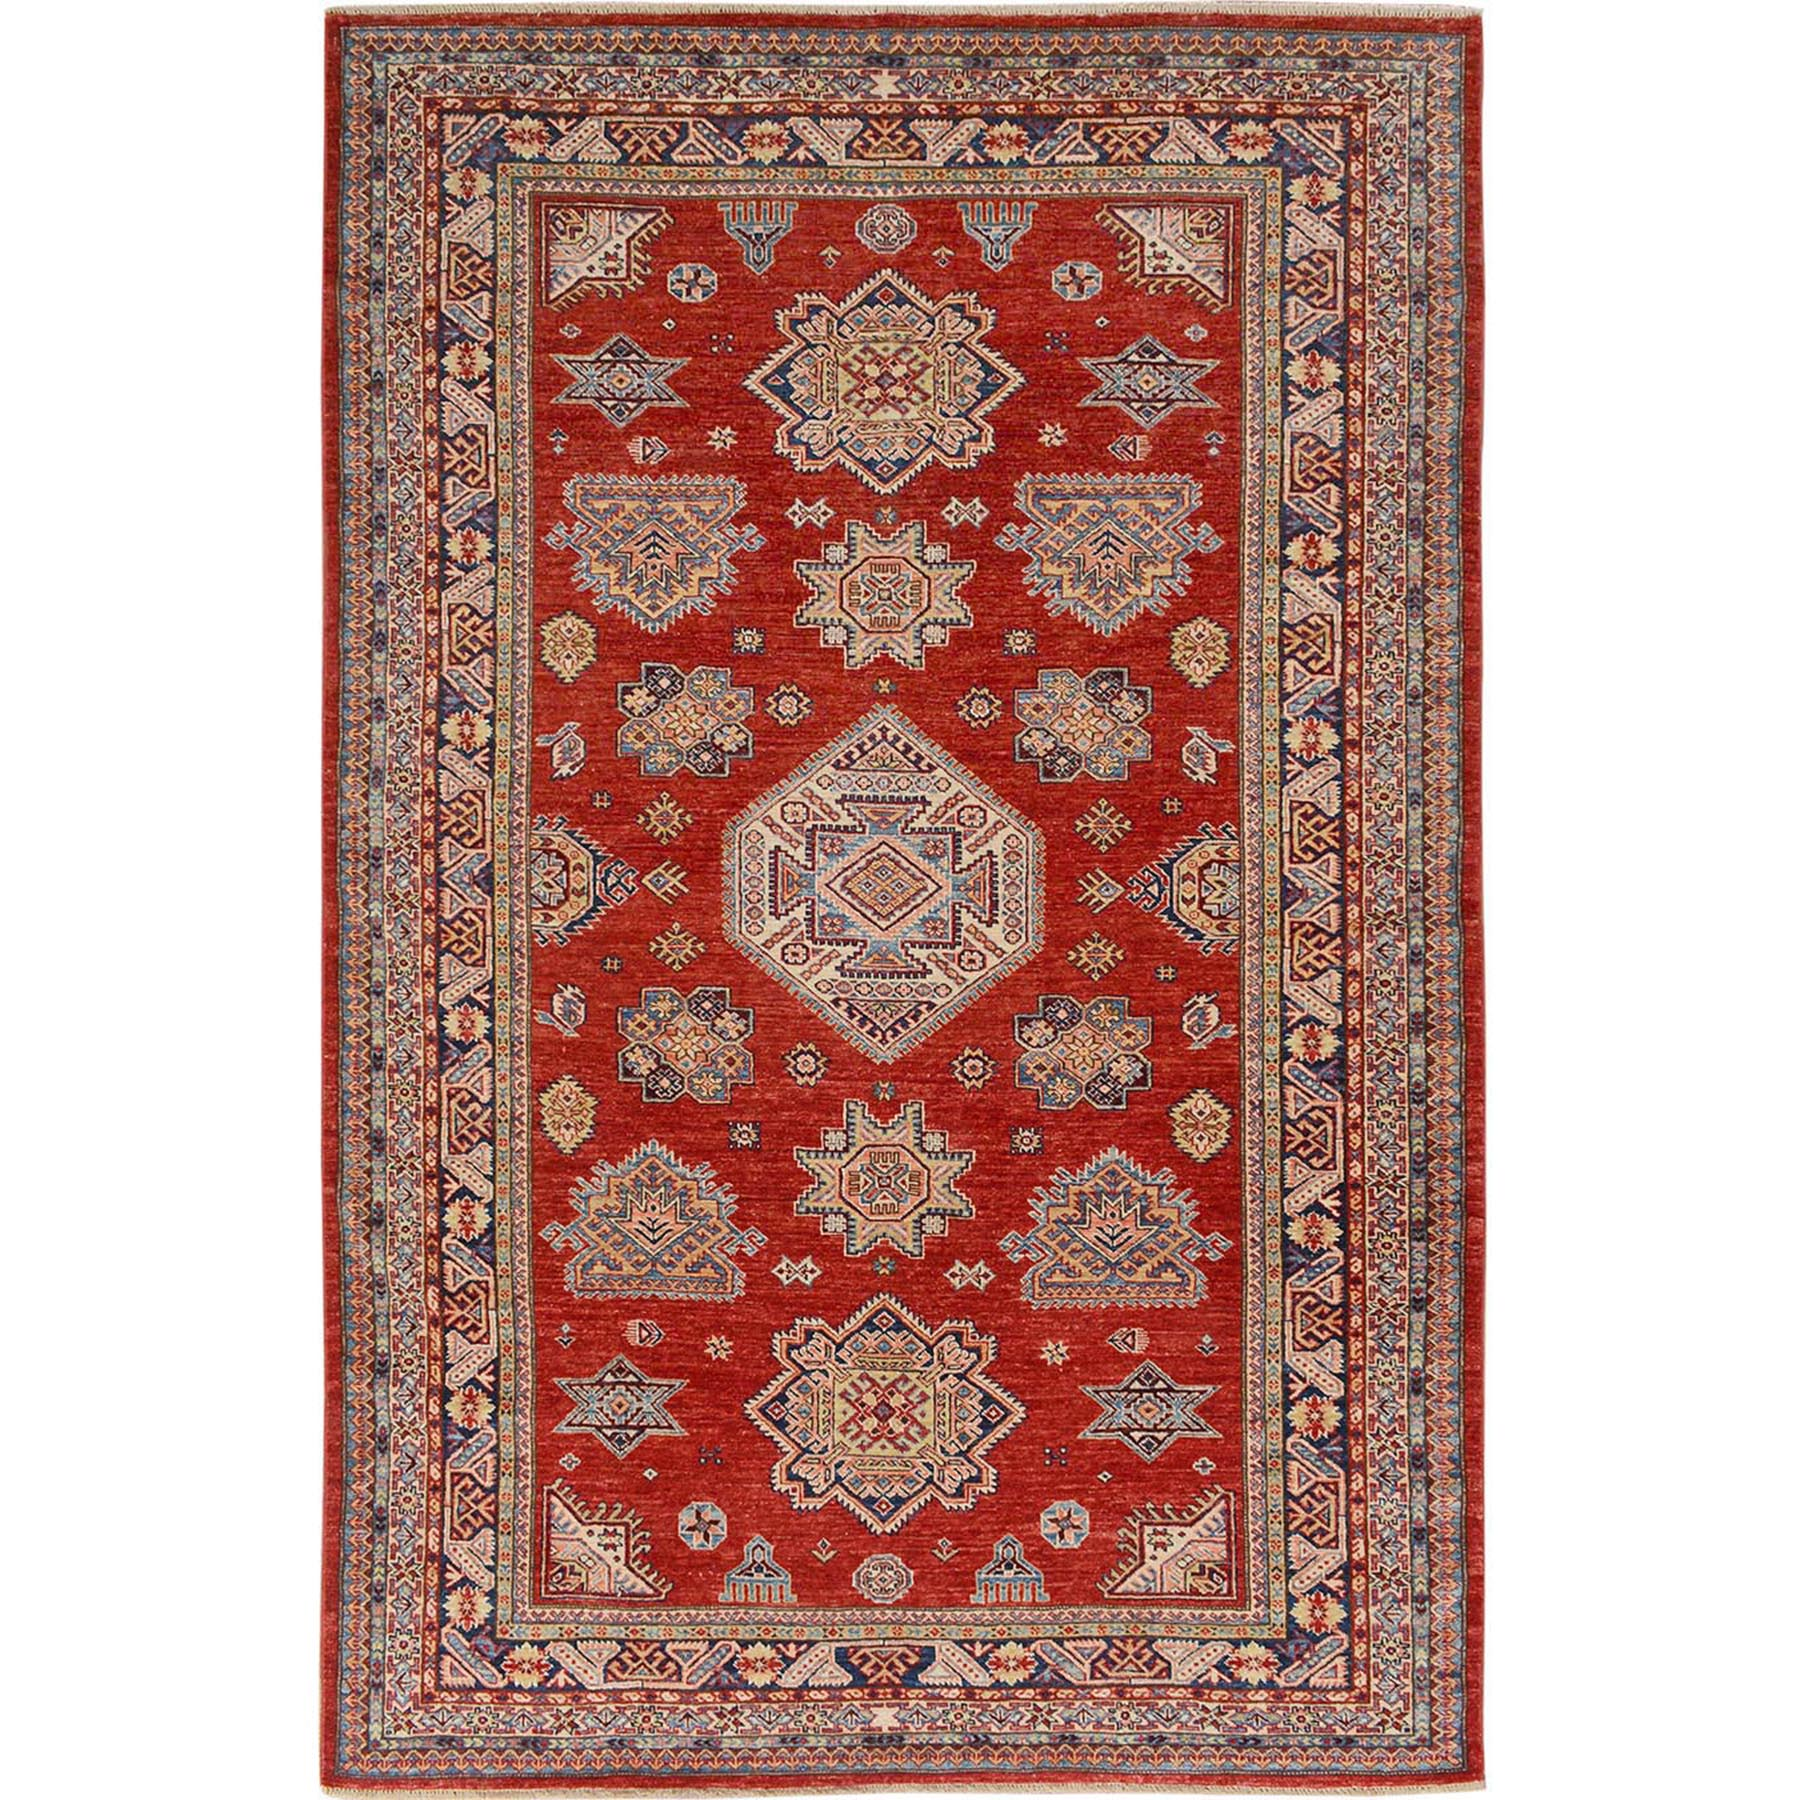 6'x9' Red Super Kazak Pure Wool Geometric Design Hand Knotted Oriental Rug